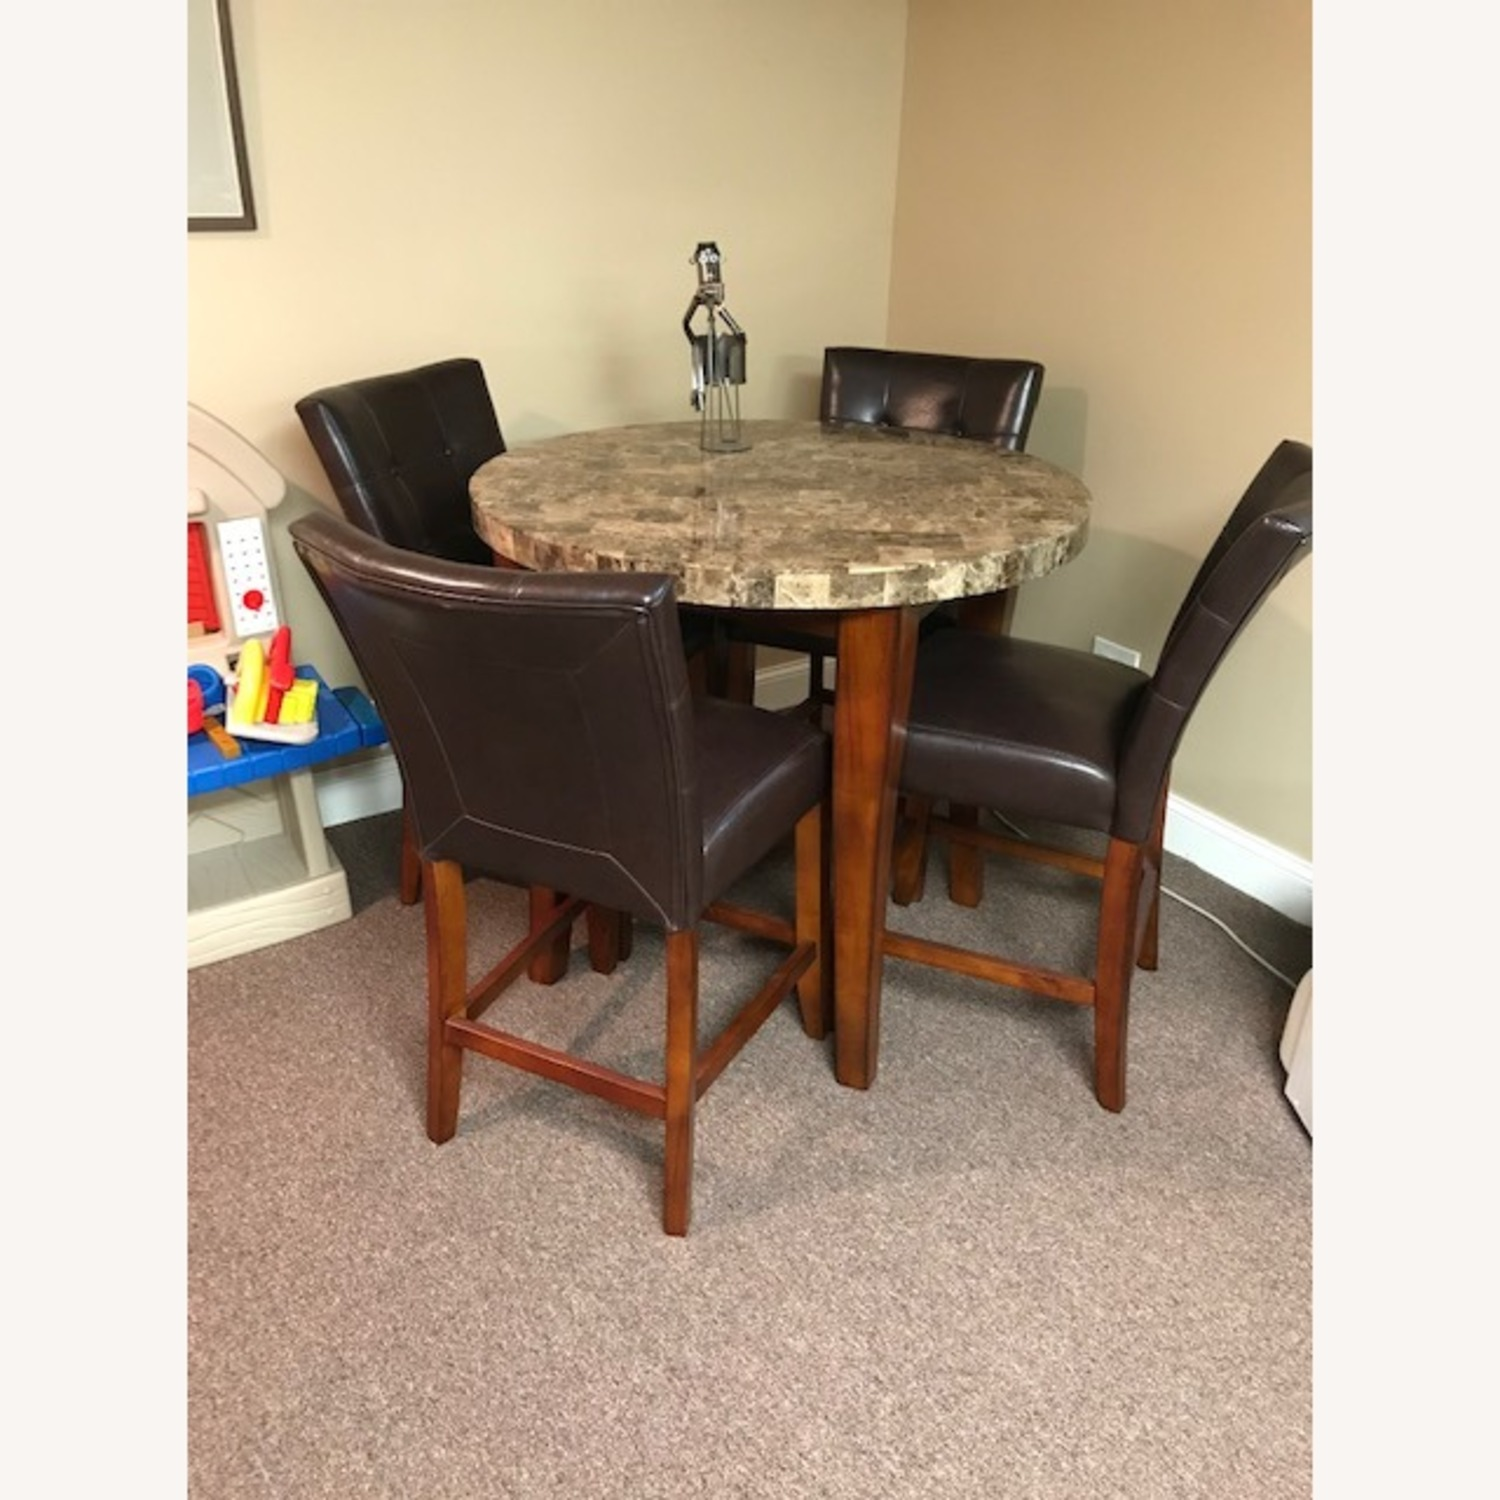 Bob's Discount Furniture Bar Table and 4 Stools - image-3